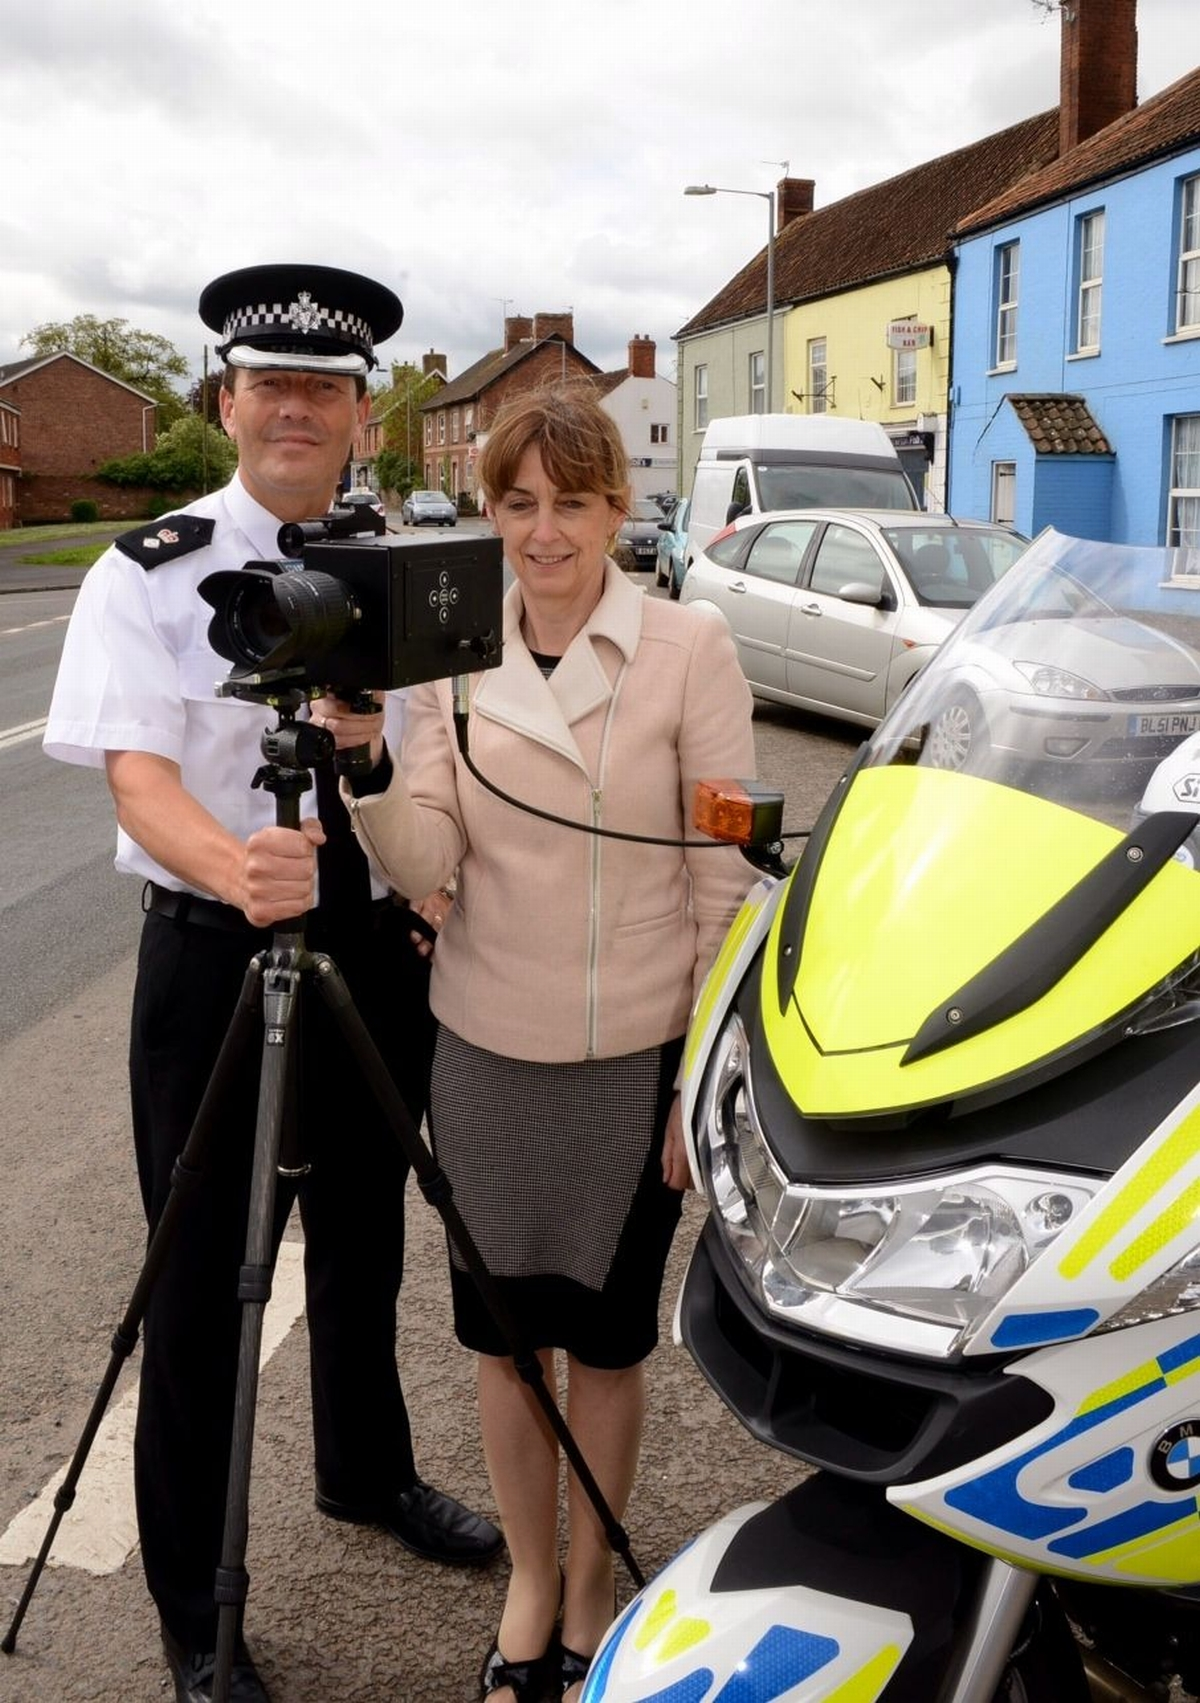 Motorbike cameras launched to improve road safety